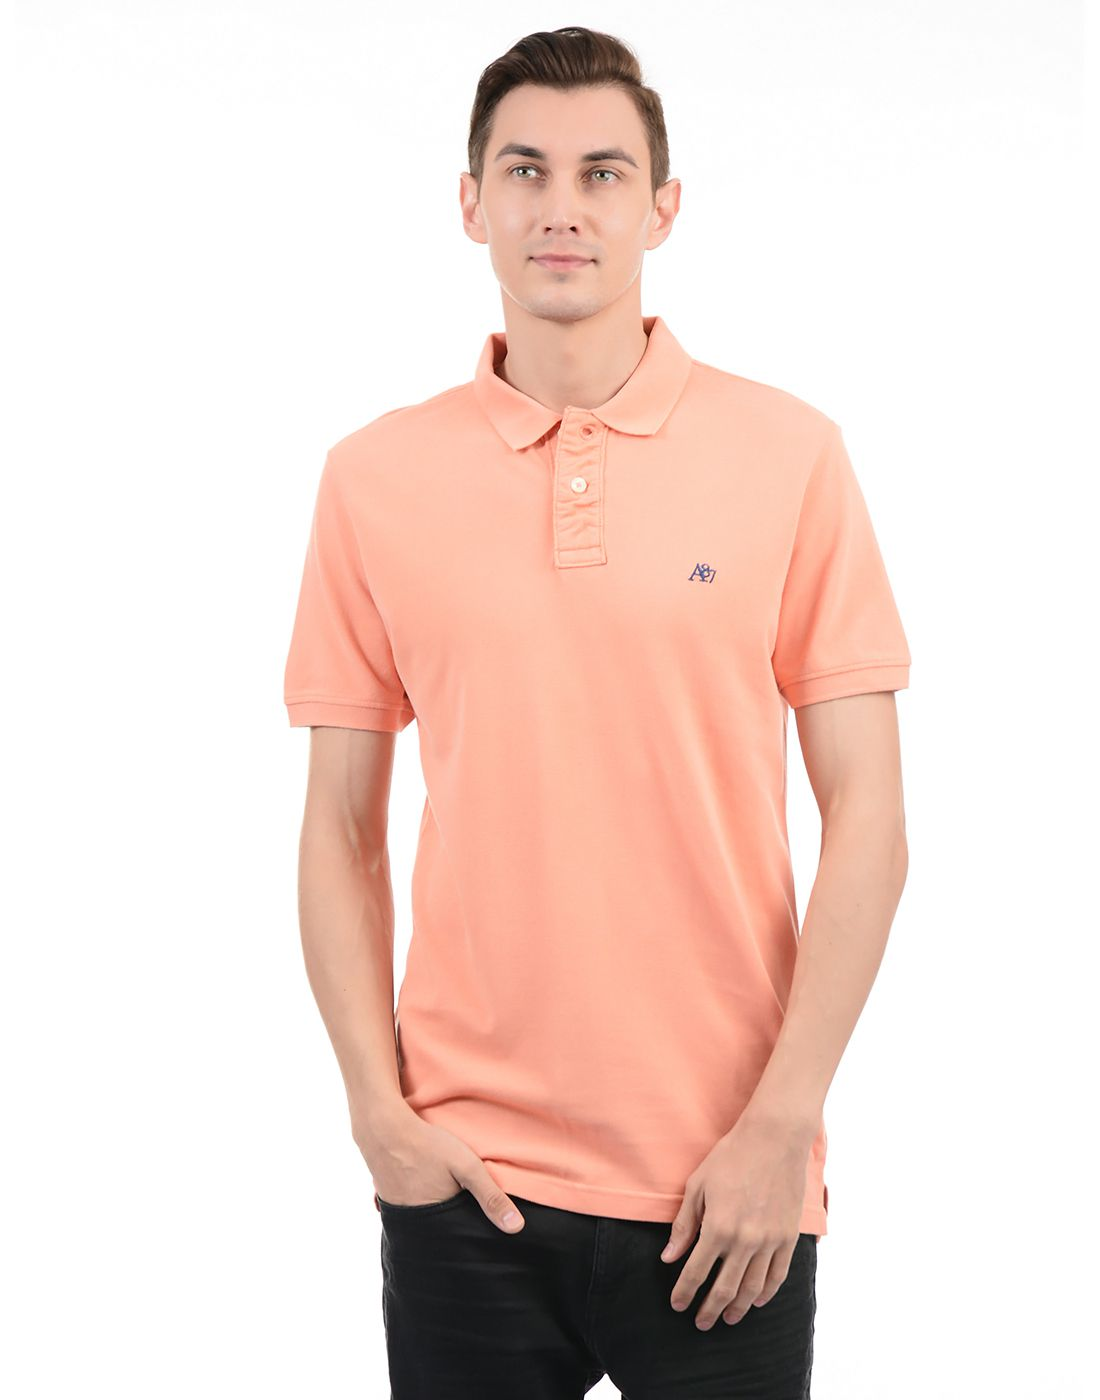 cfd4a7859 Aeropostale Orange Regular Fit Polo T Shirt - Buy Aeropostale Orange  Regular Fit Polo T Shirt Online at Low Price - Snapdeal.com